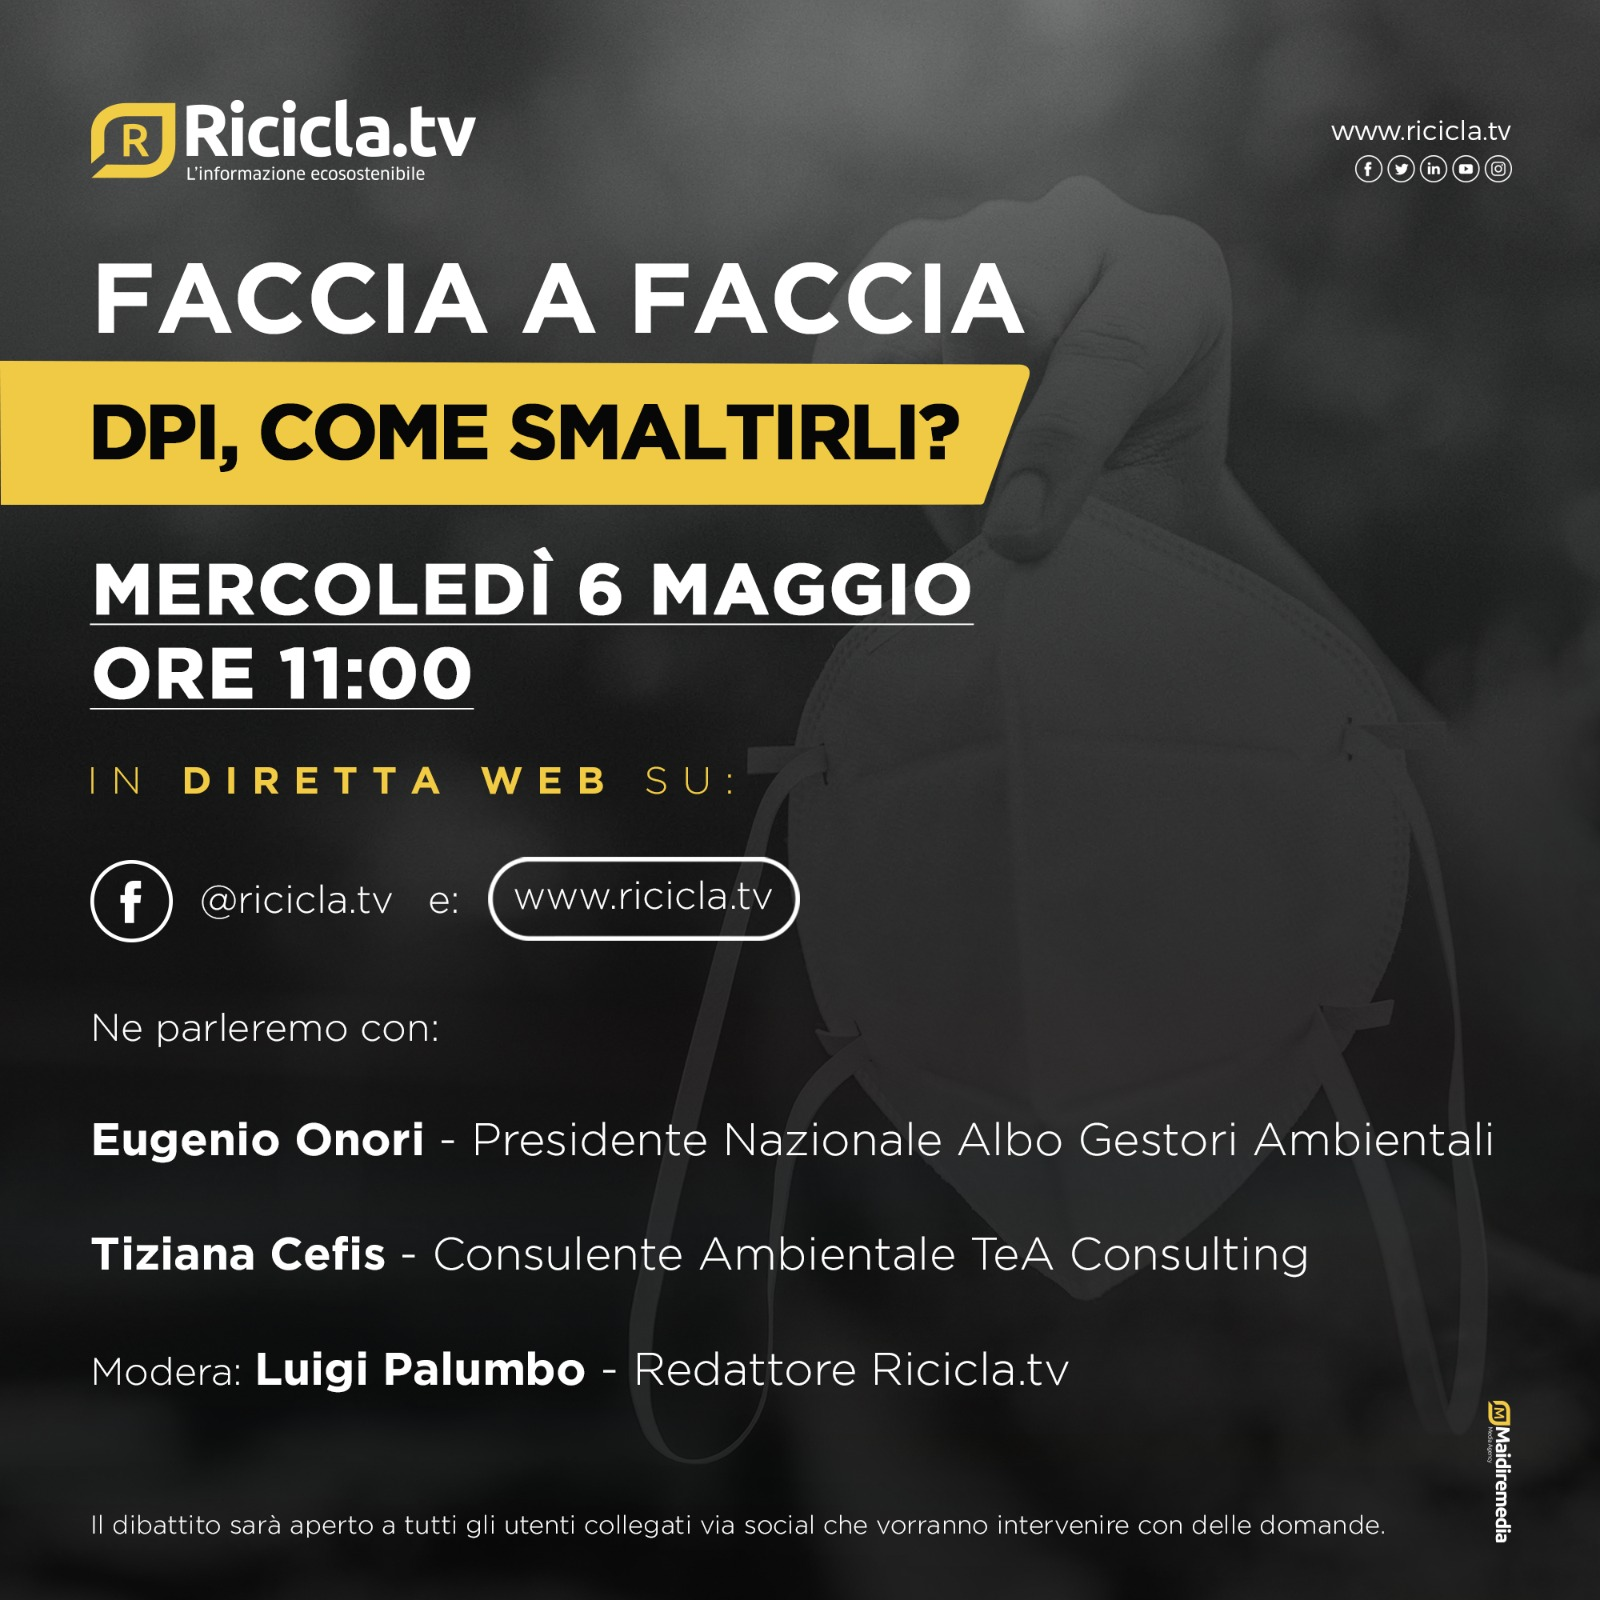 ricicla.tv: DPI, come smaltirli?